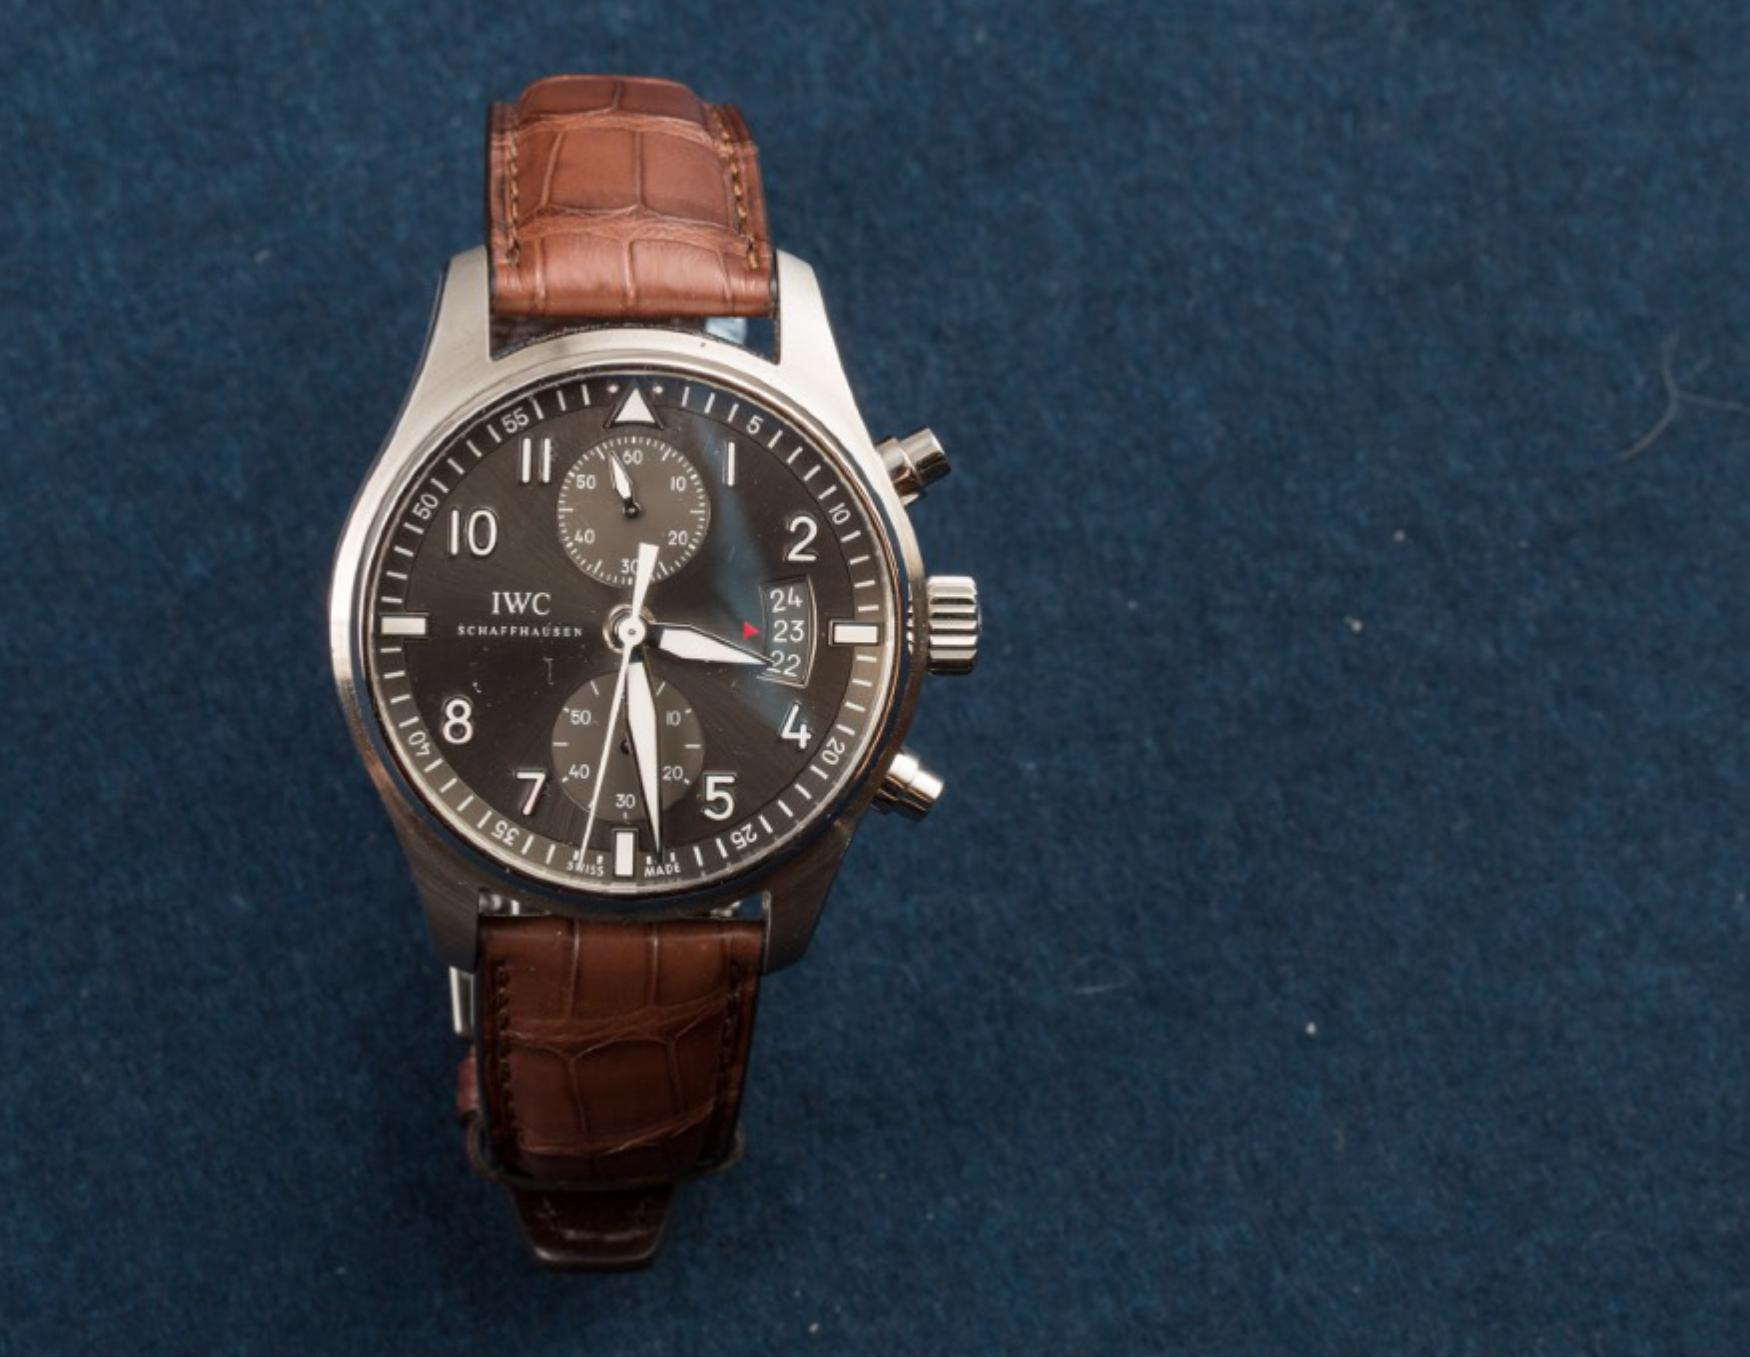 Lot 8 - IWC,New Old Stock, Pilot Spitfire Chronograph